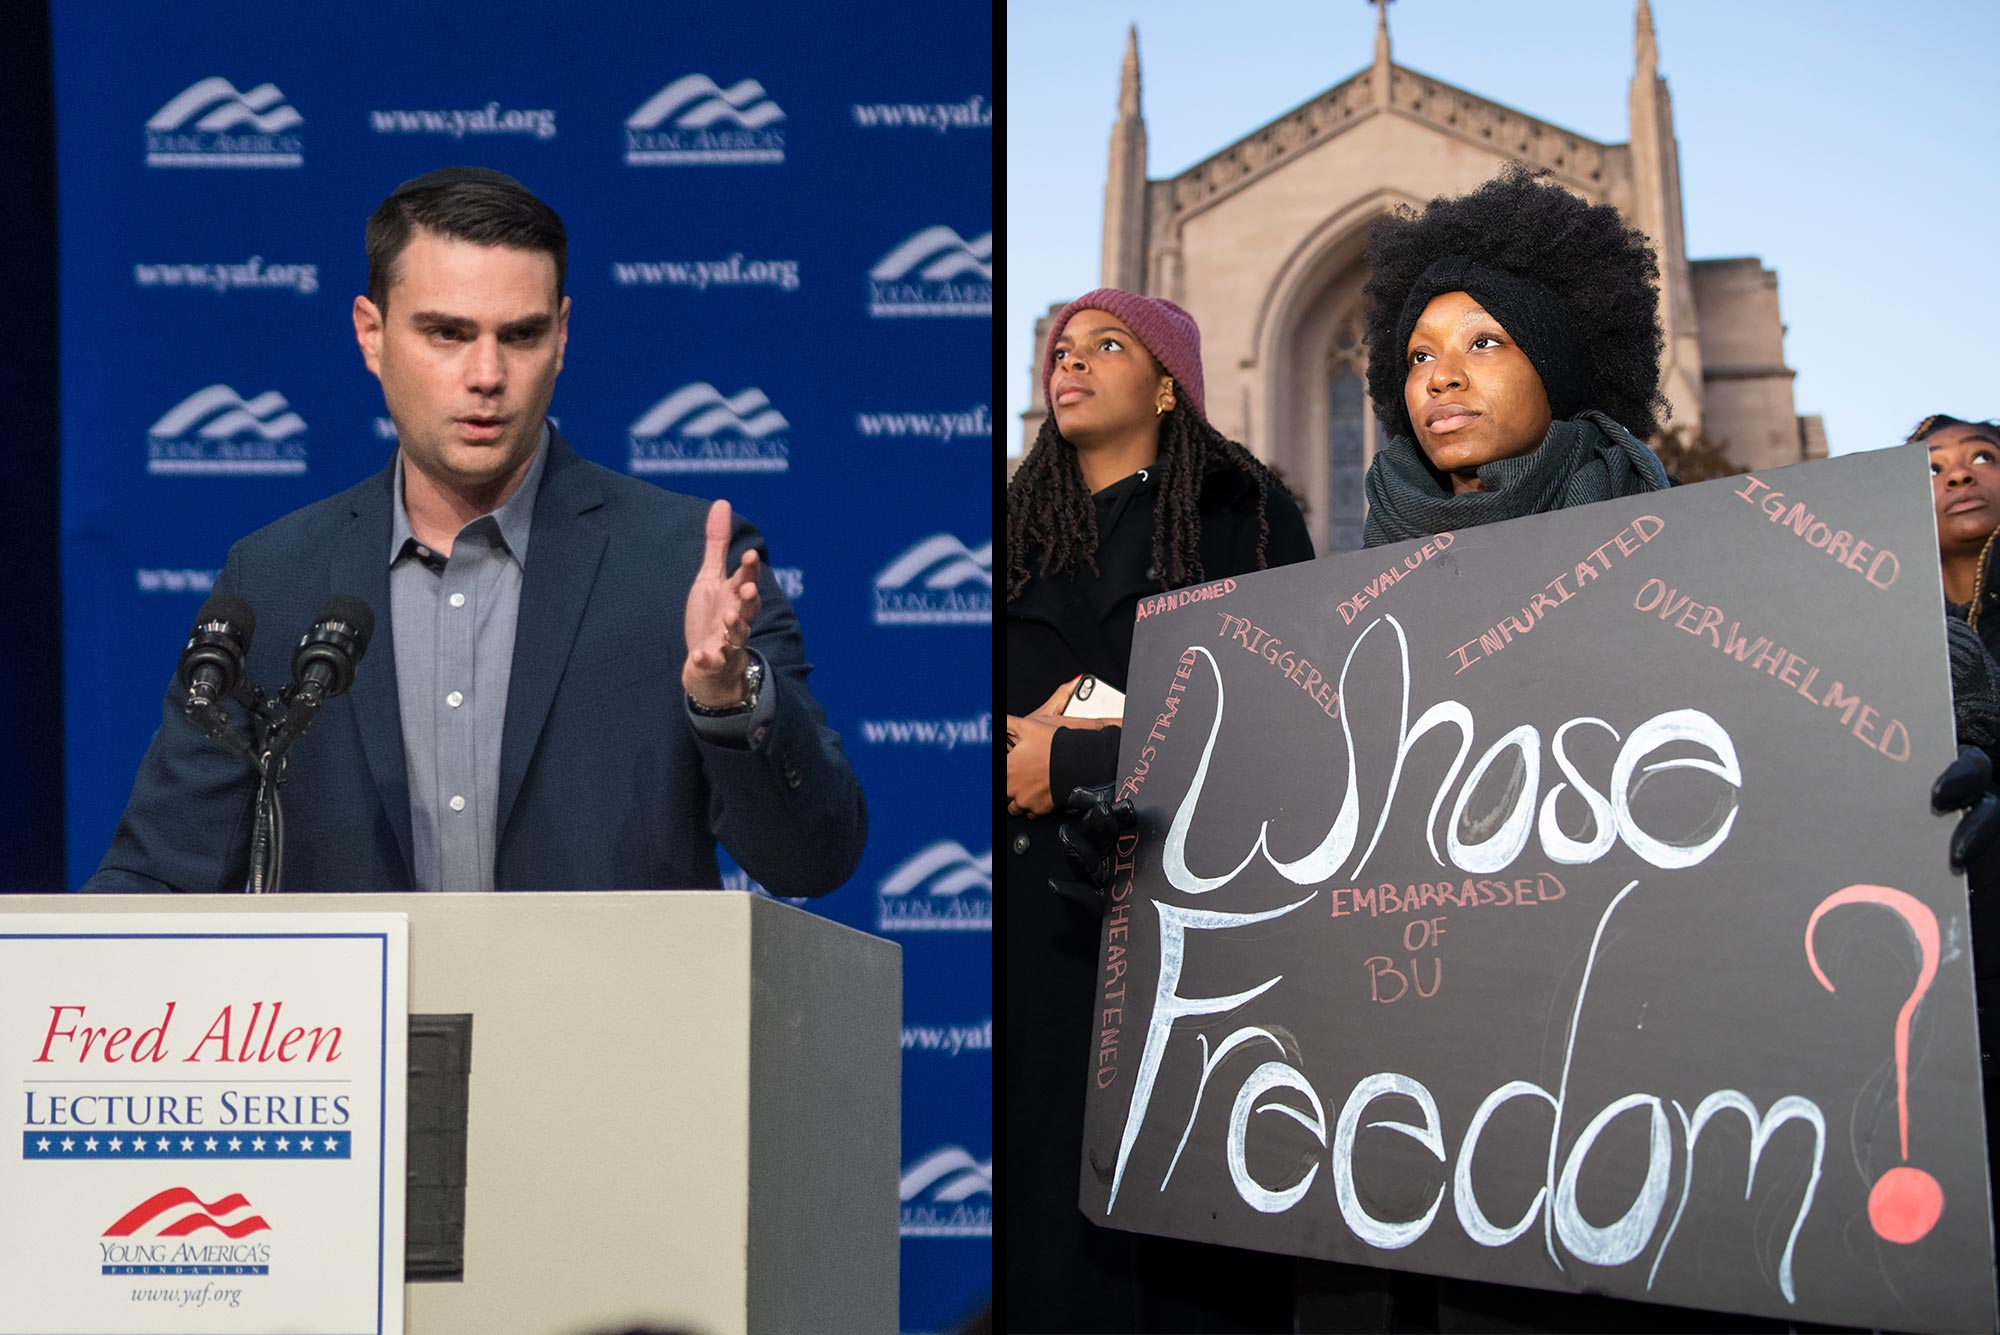 Composite image showing conservative commentator Ben Shapiro delivering a speech at Boston University (left) and African American protestors holding a sign that says 'Whose Freedom?' while demonstrating against Shapiro's appearance at BU.